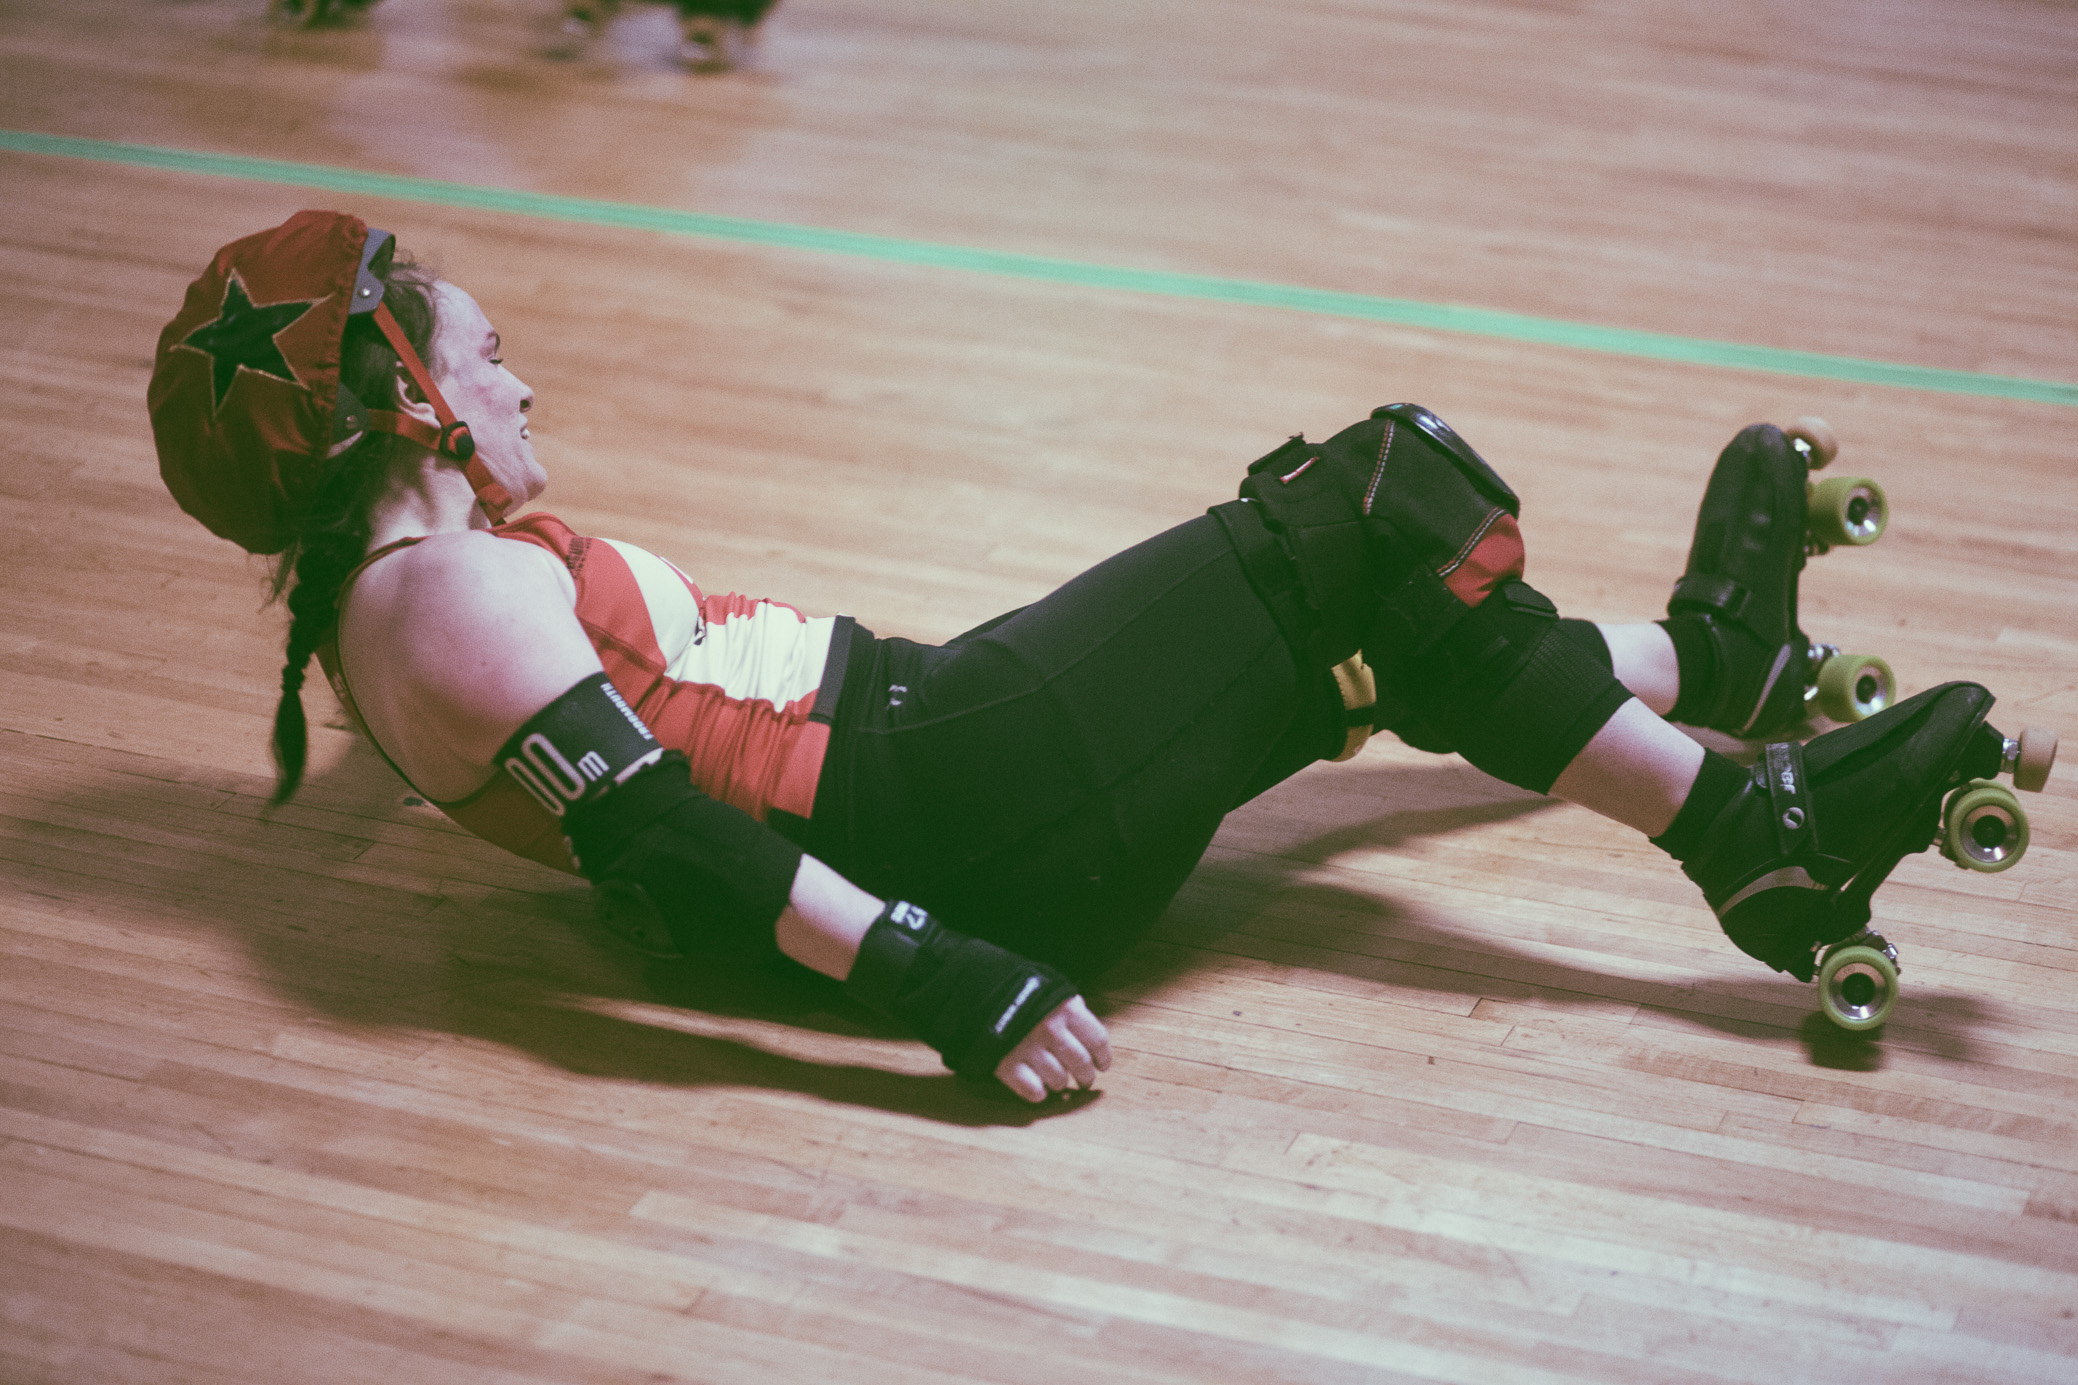 A scene from the roller derby bout between The Druid City Dames and Montgomery Roller Derby at Super Skate in Tuscaloosa, Alabama on April 14th, 2018. (Photo by David A. Smith/DSmithScenes)